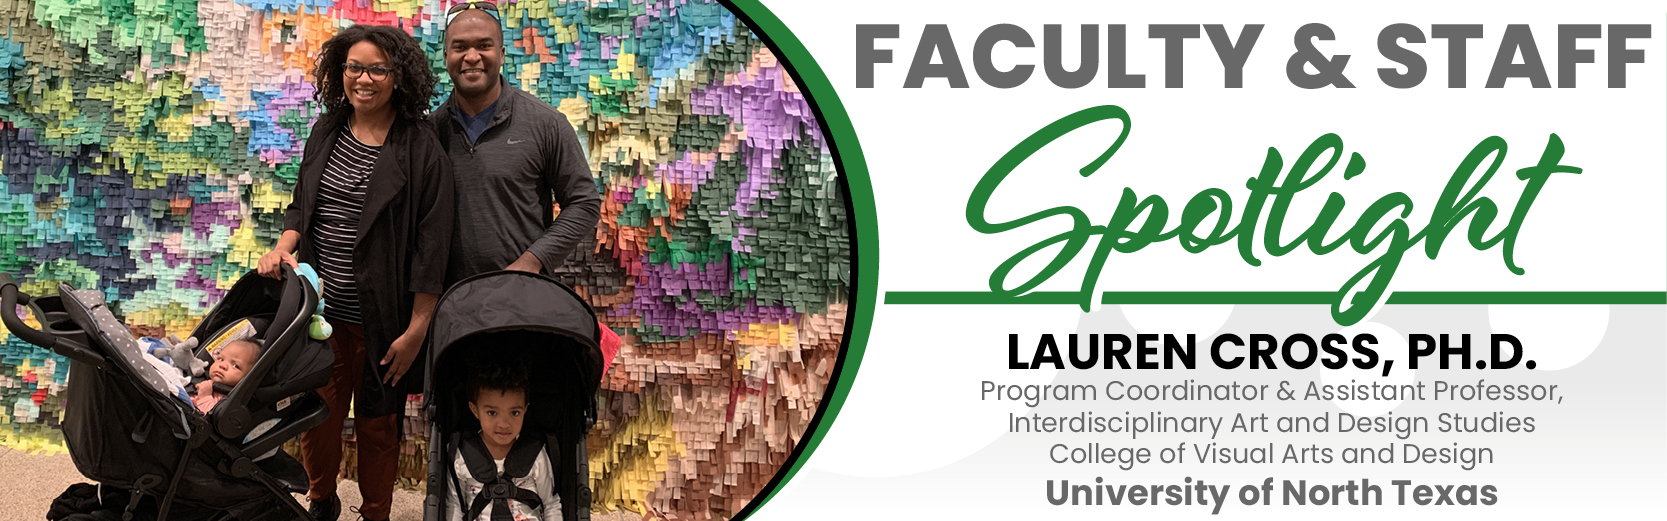 Faculty & Staff Spotlight: Lauren Cross, Ph.D., with her husband and two small children